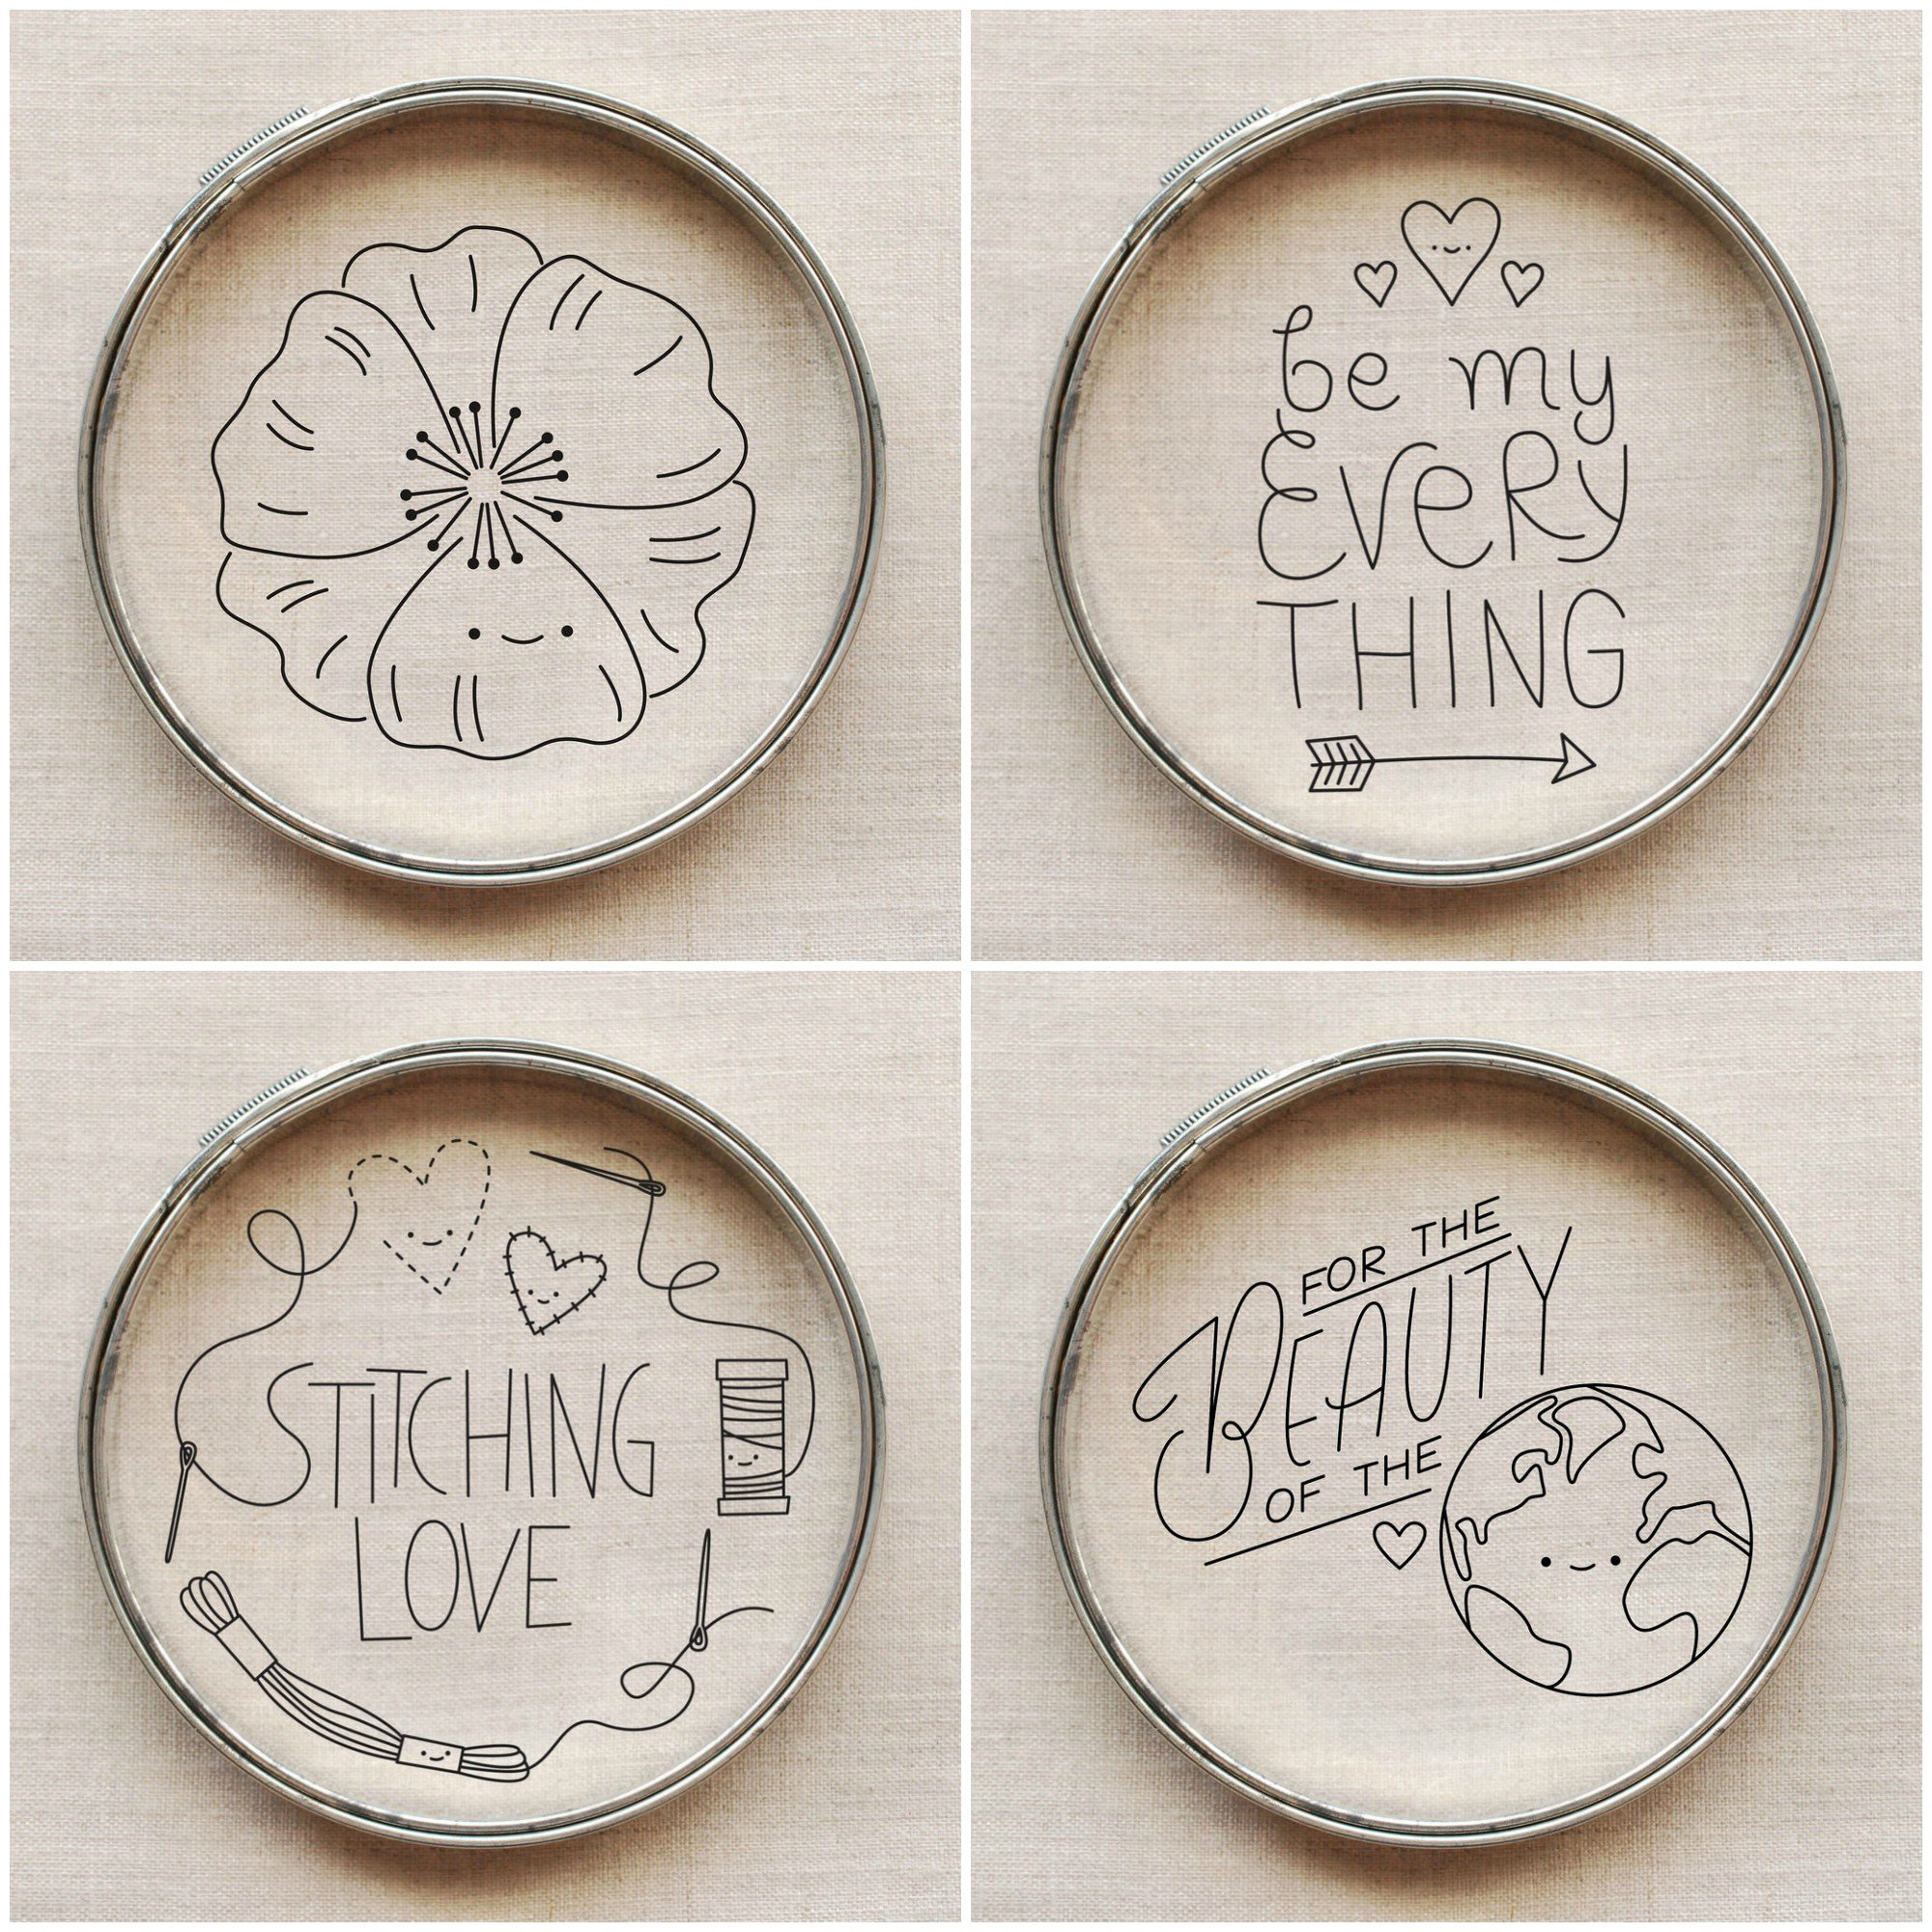 Super cute free embroidery patterns from Wild Olive